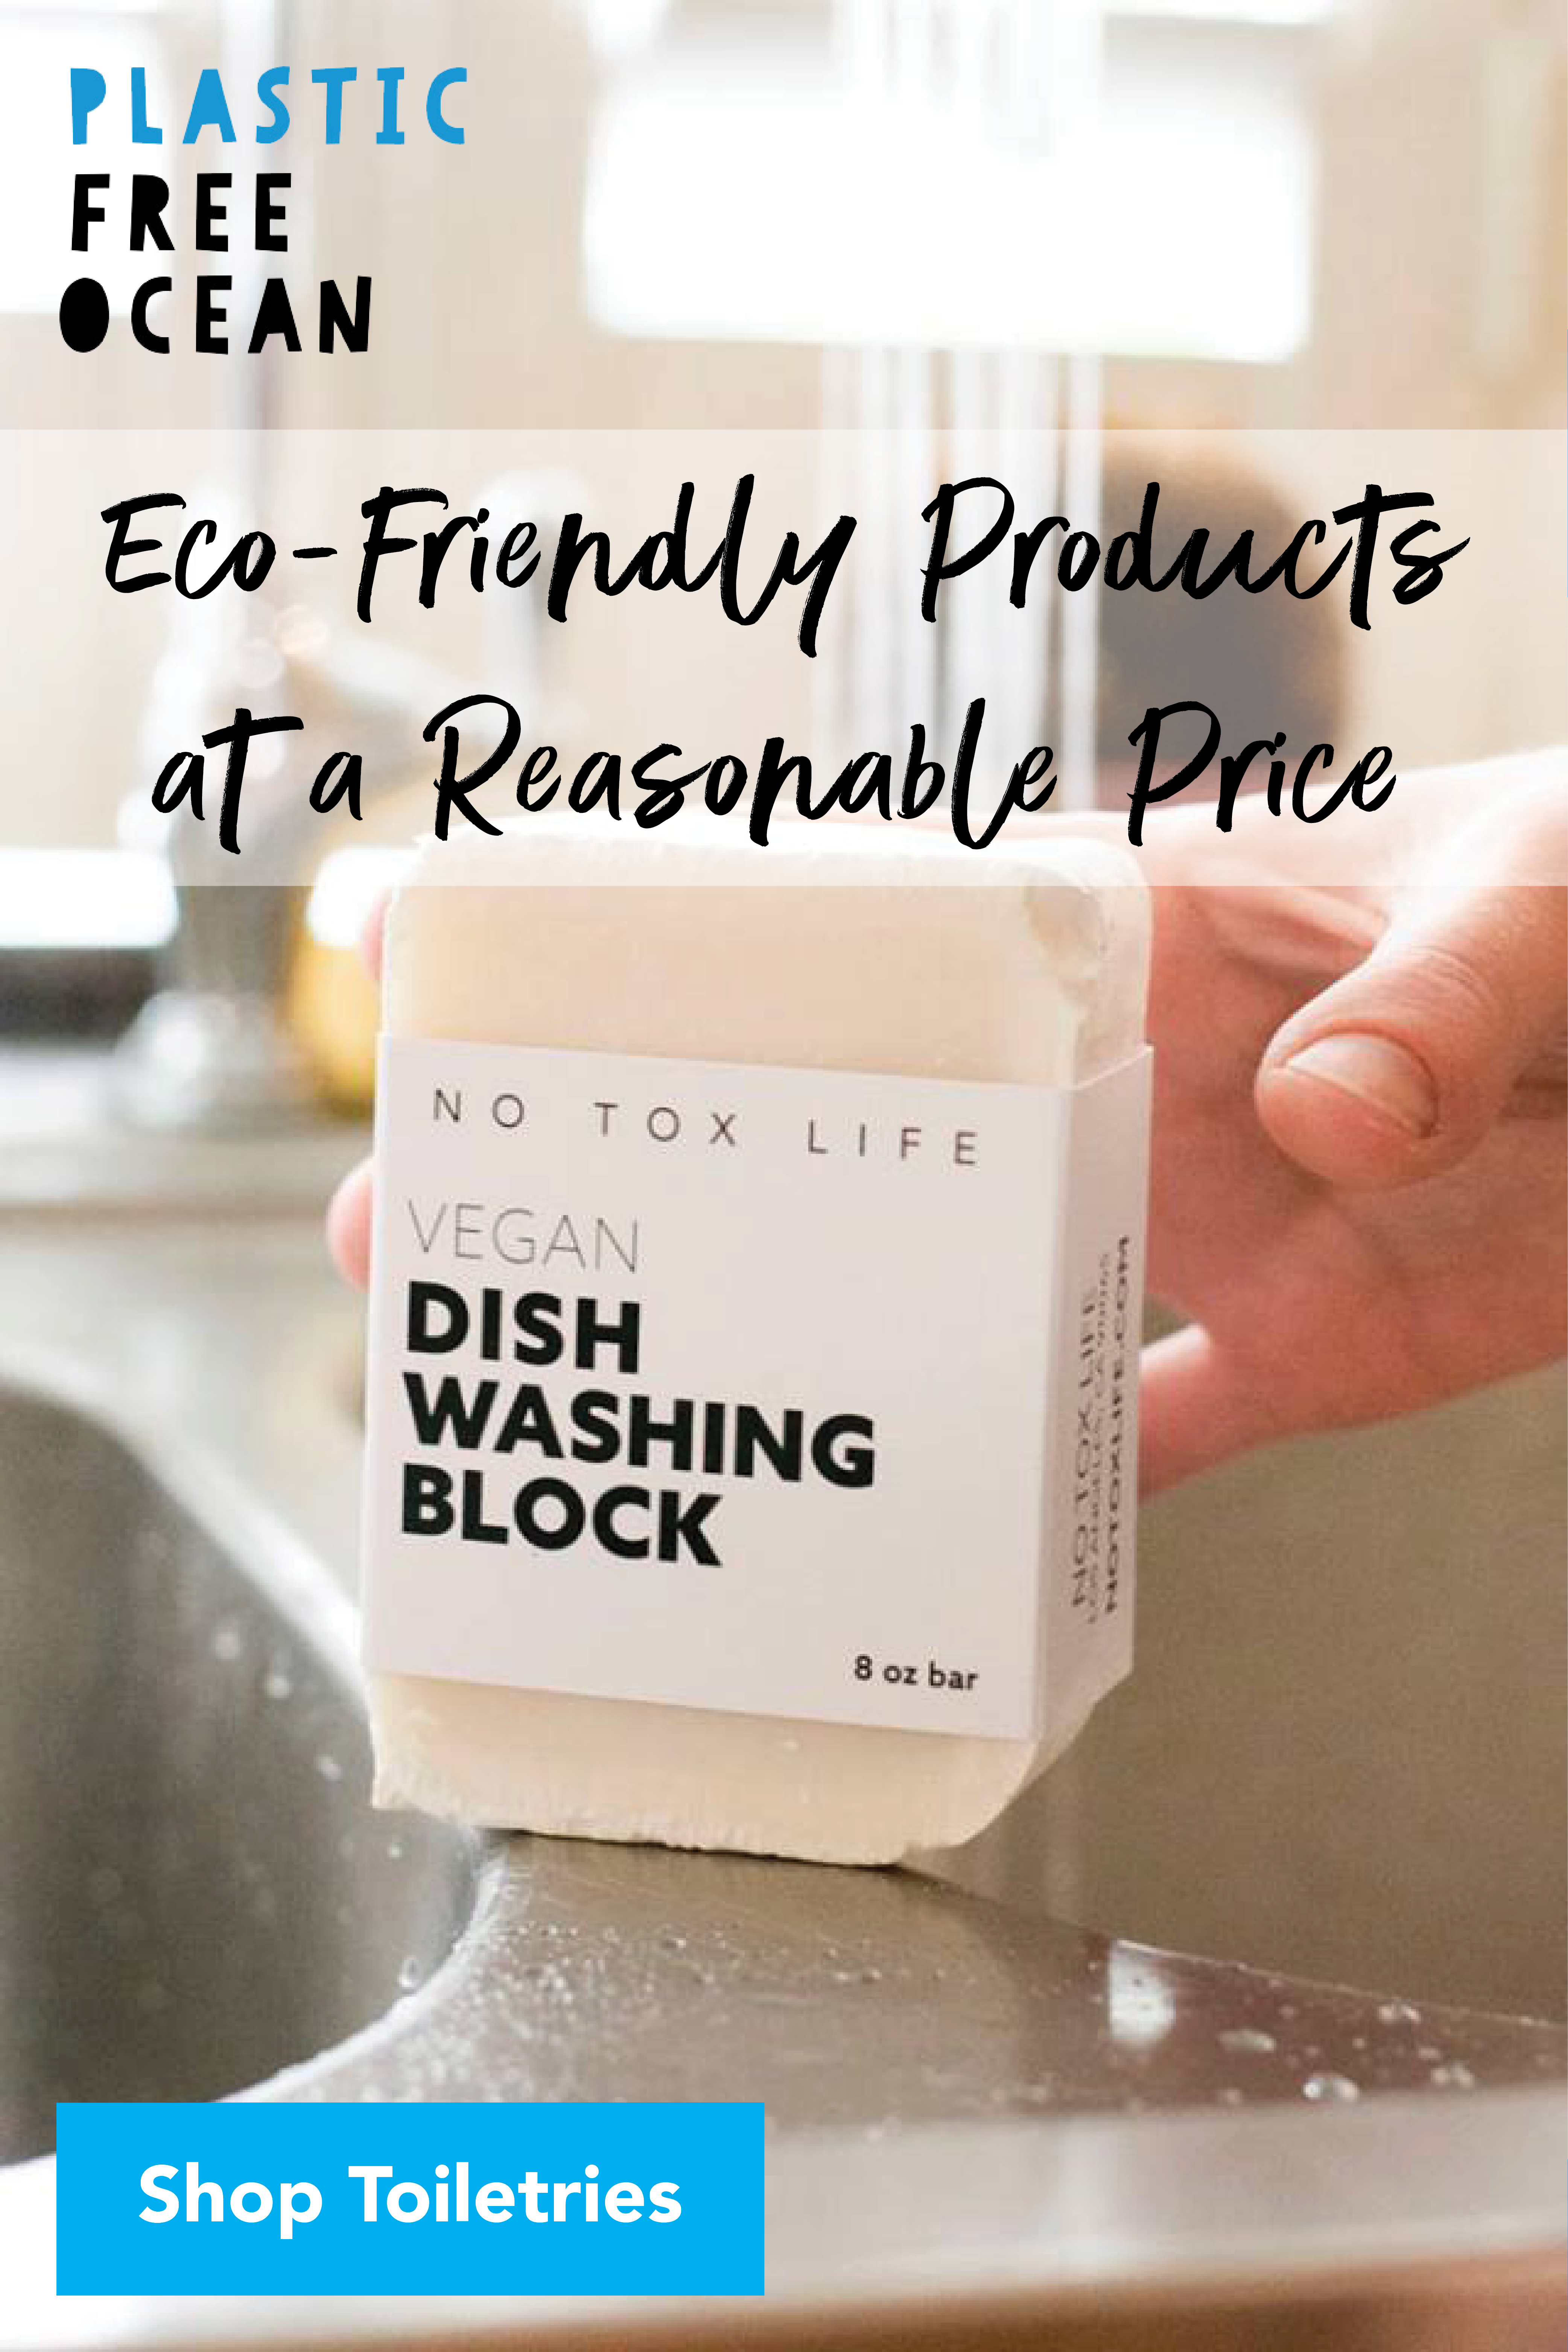 Zero Waste Dish Washing Block In 2020 Palm Oil Free Products